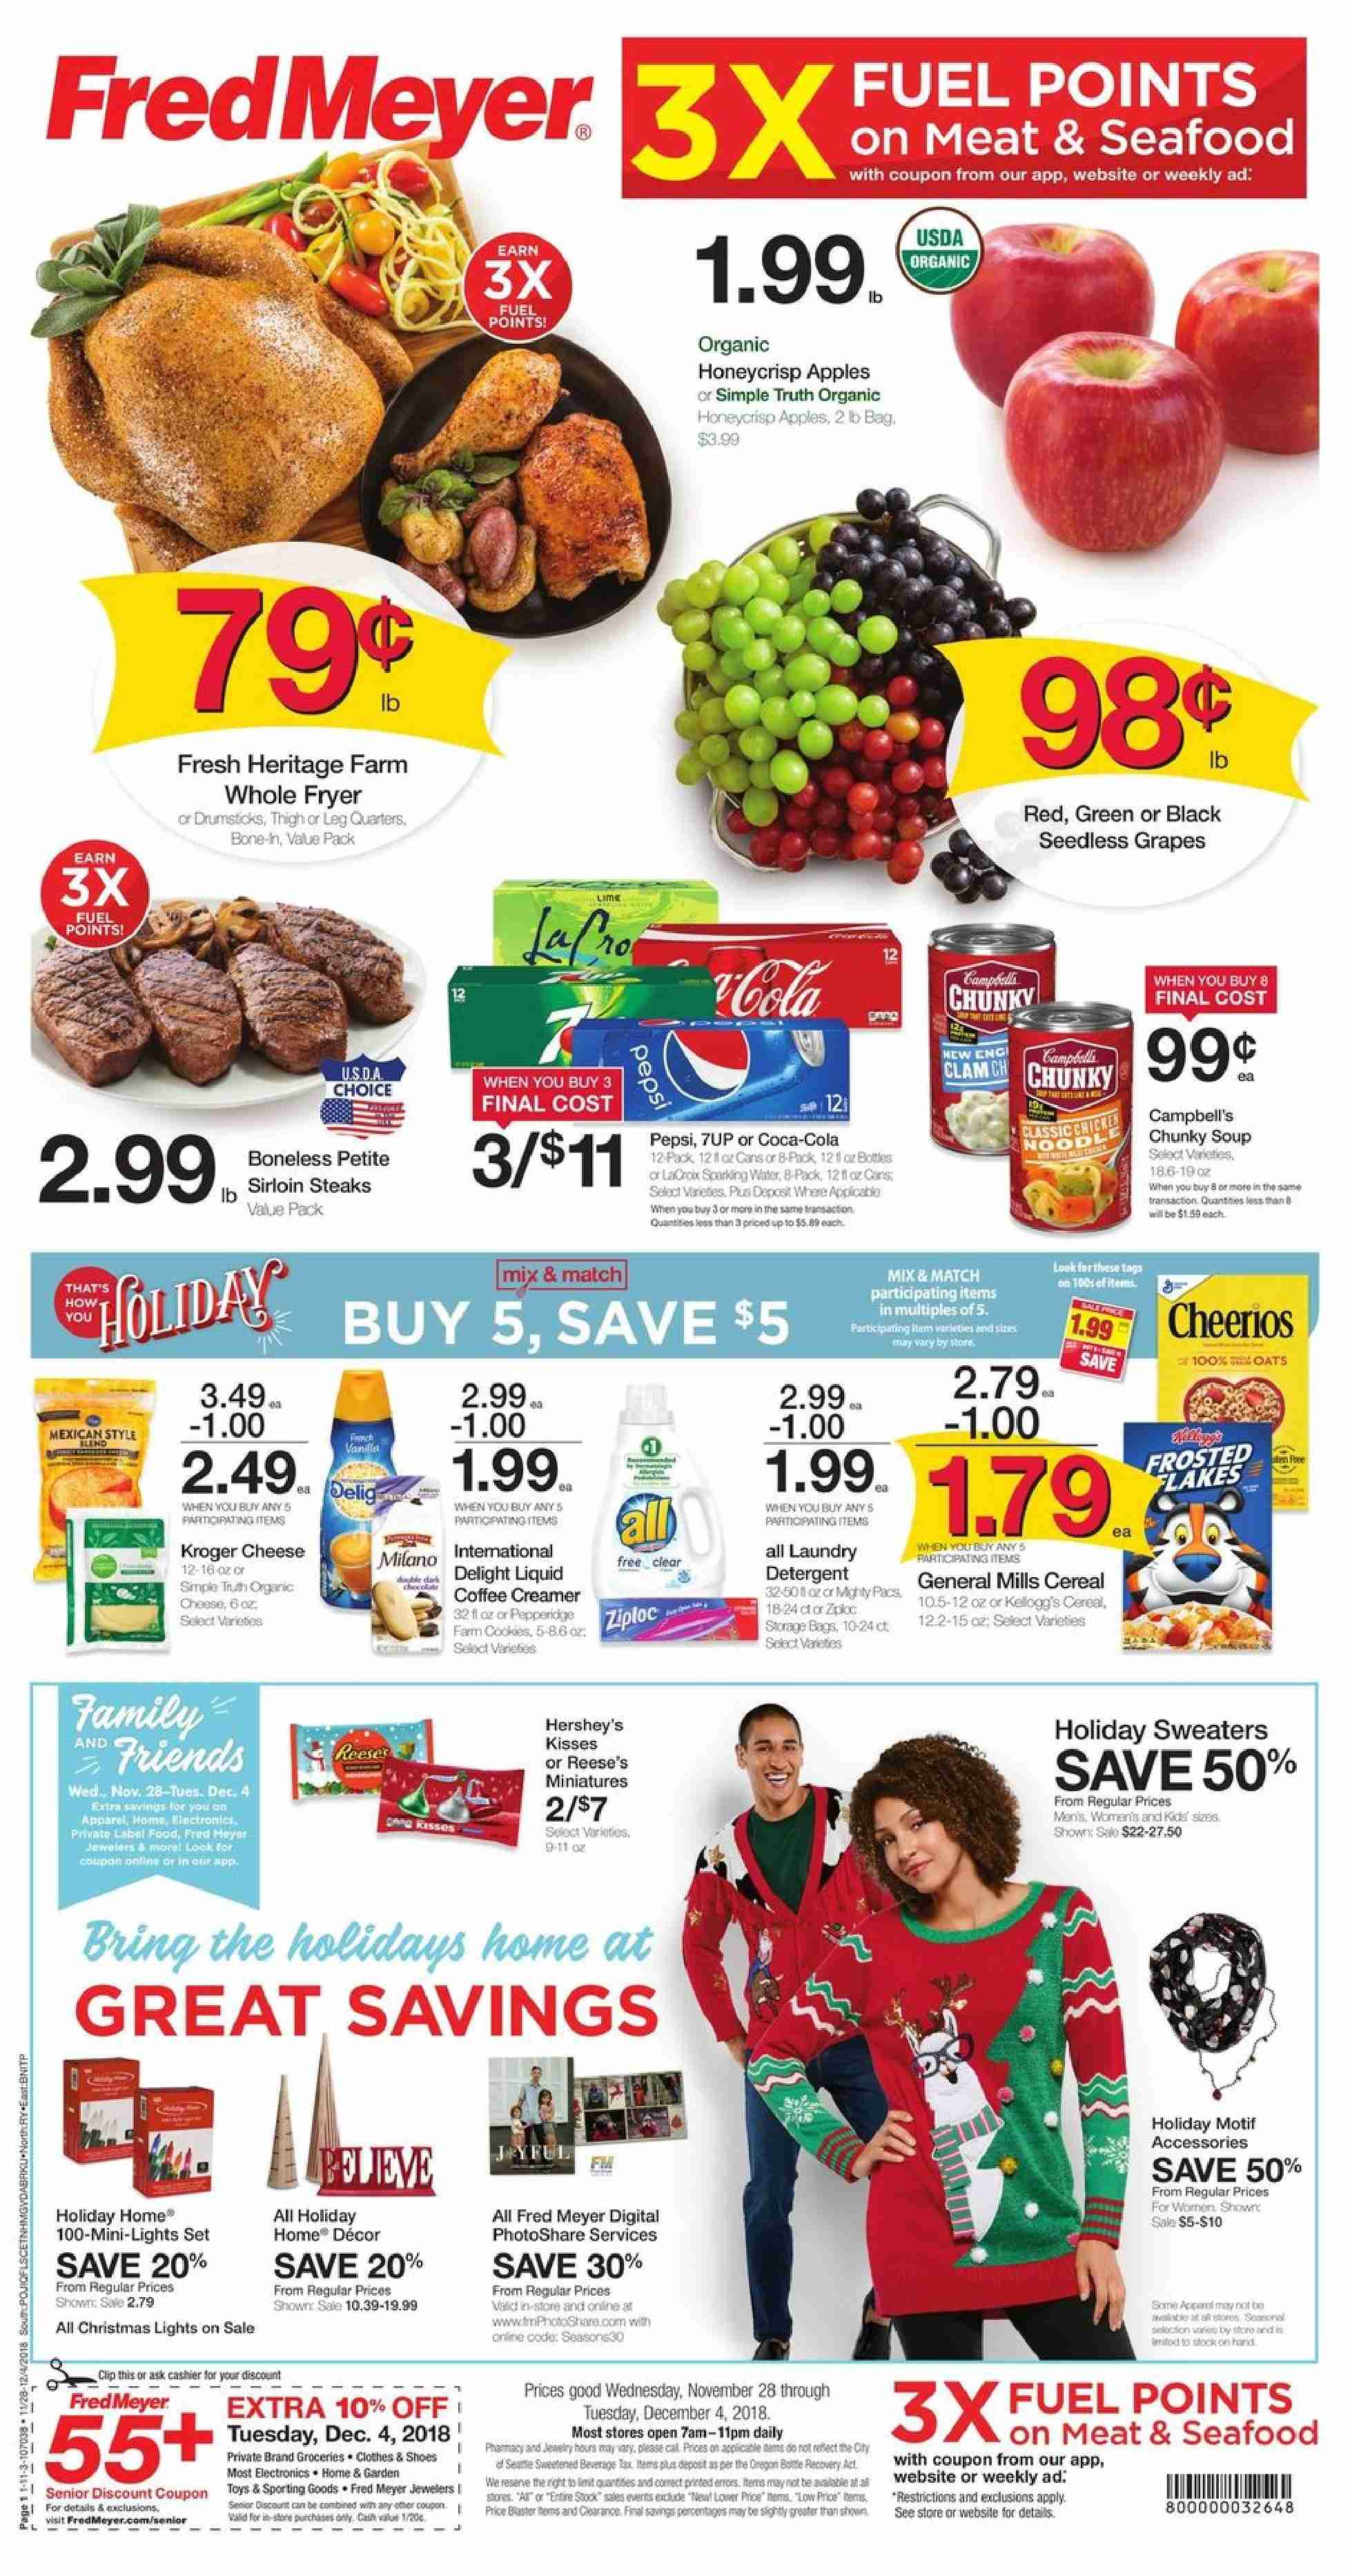 Fred Meyer Flyer  - 11.28.2018 - 12.04.2018. Page 1.